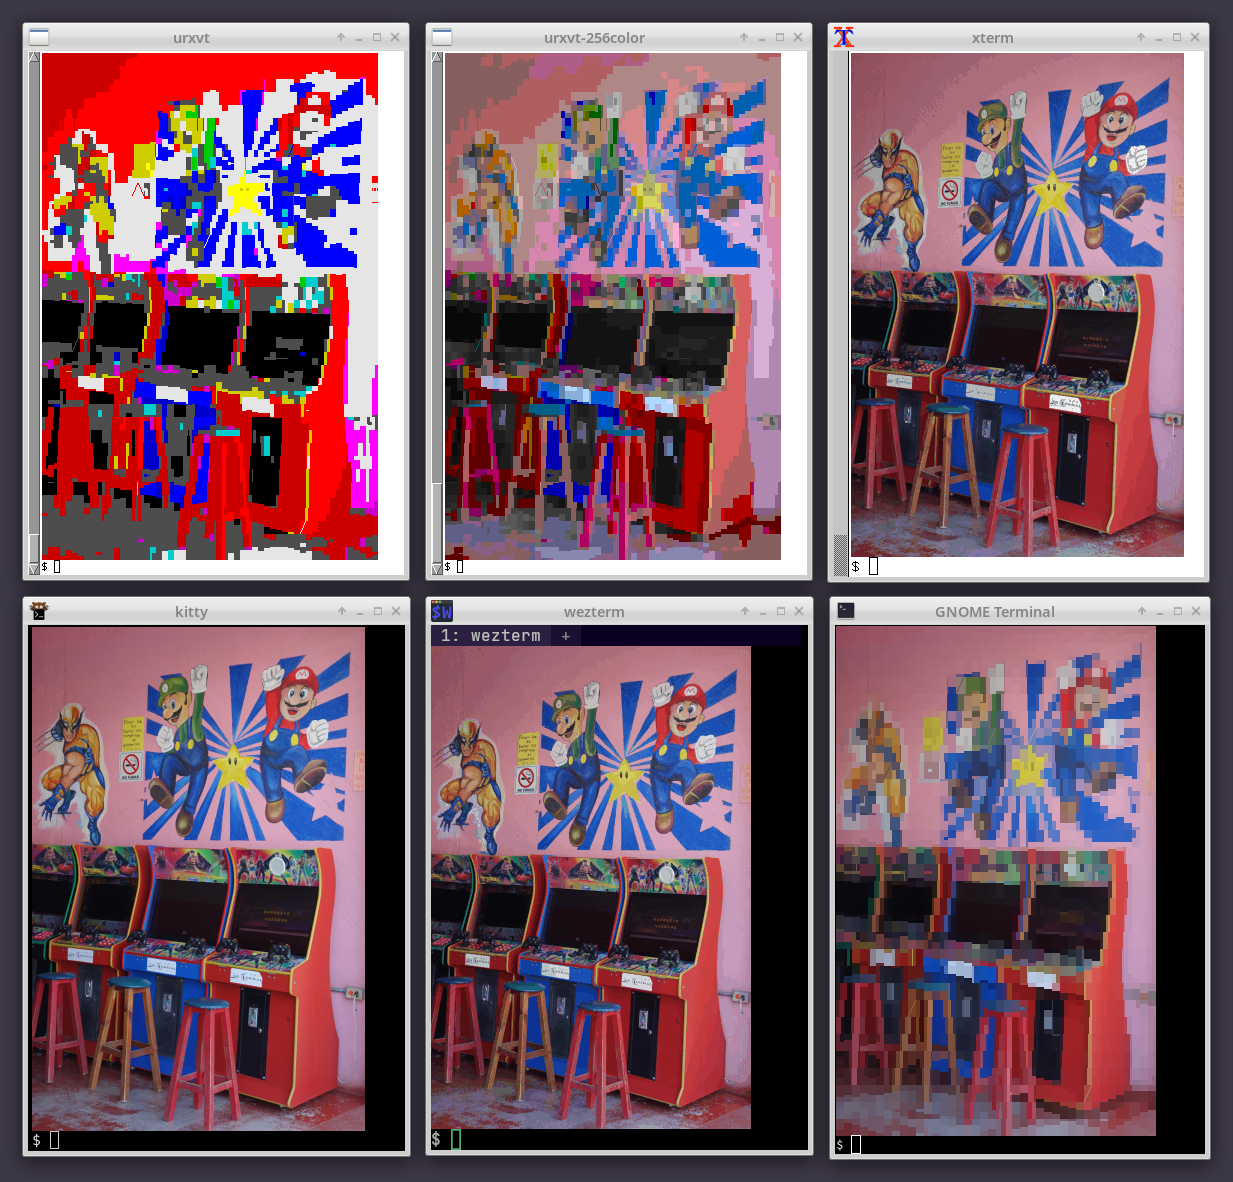 Comparison of Chafa graphics in various terminals